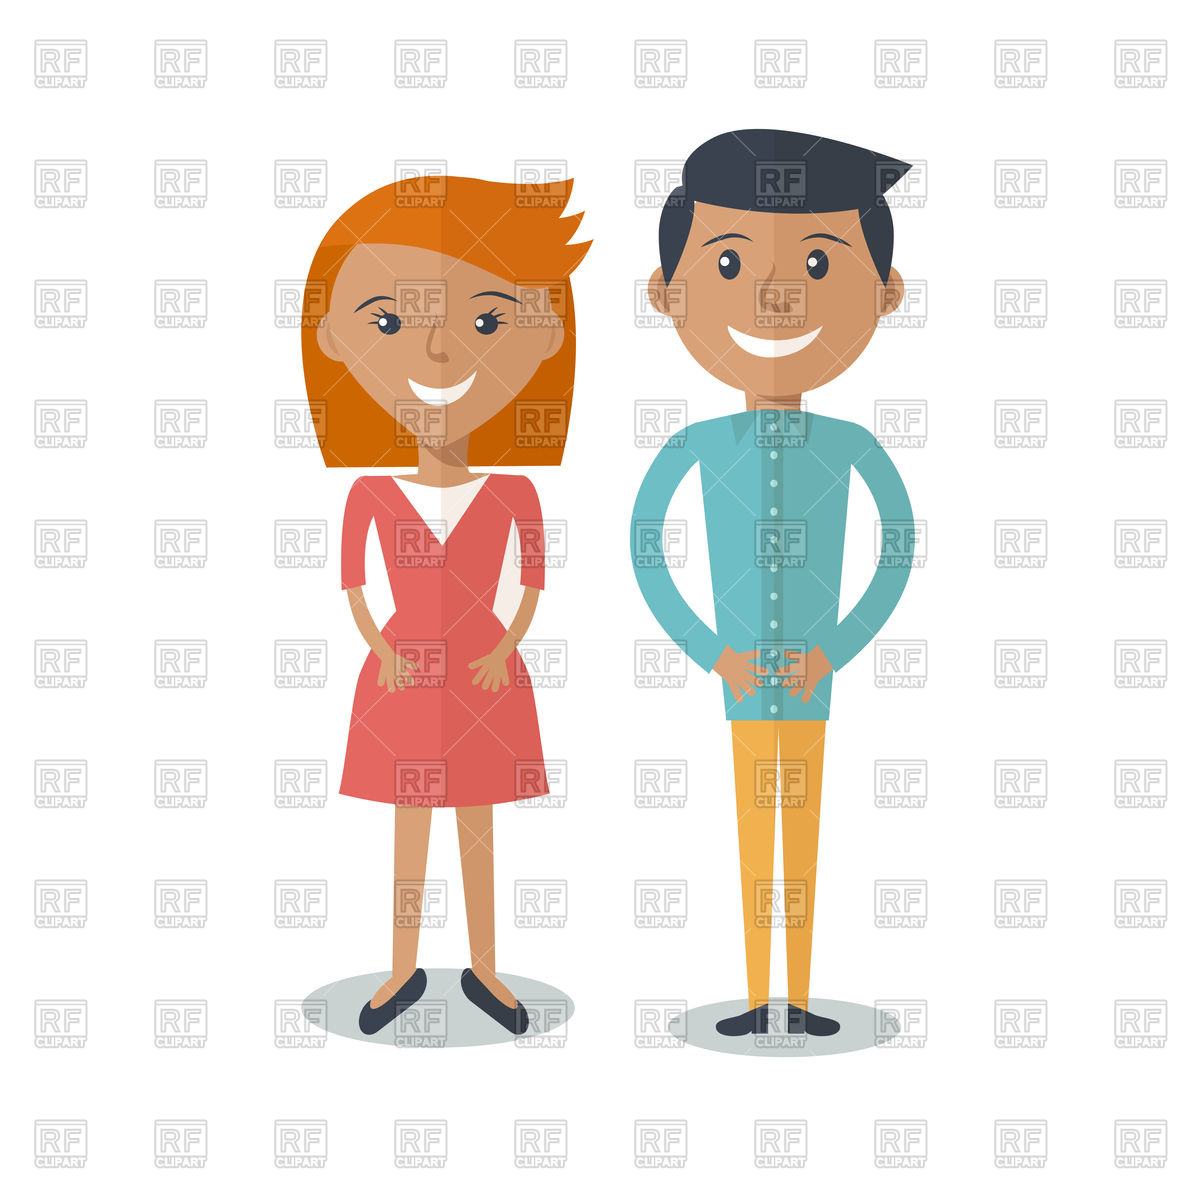 Happy smiling couple in cartoon style Vector Image #80199.